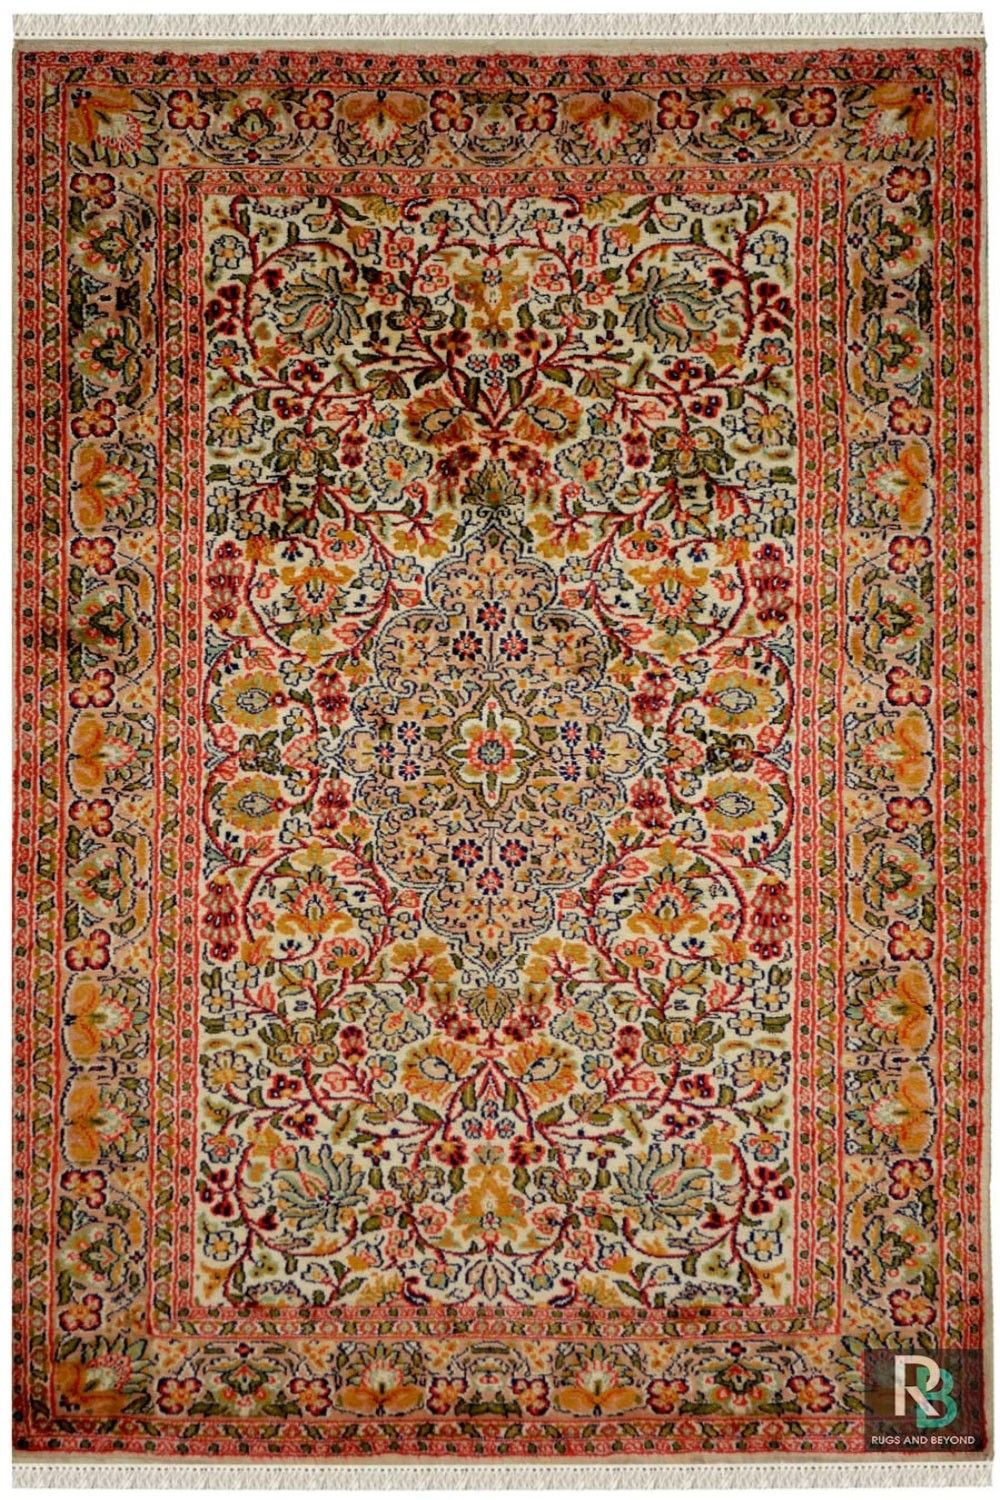 Gulab Medallion Kashan Silk Rugs With Best Color Combination In 2020 Rugs Area Rugs Rugs On Carpet